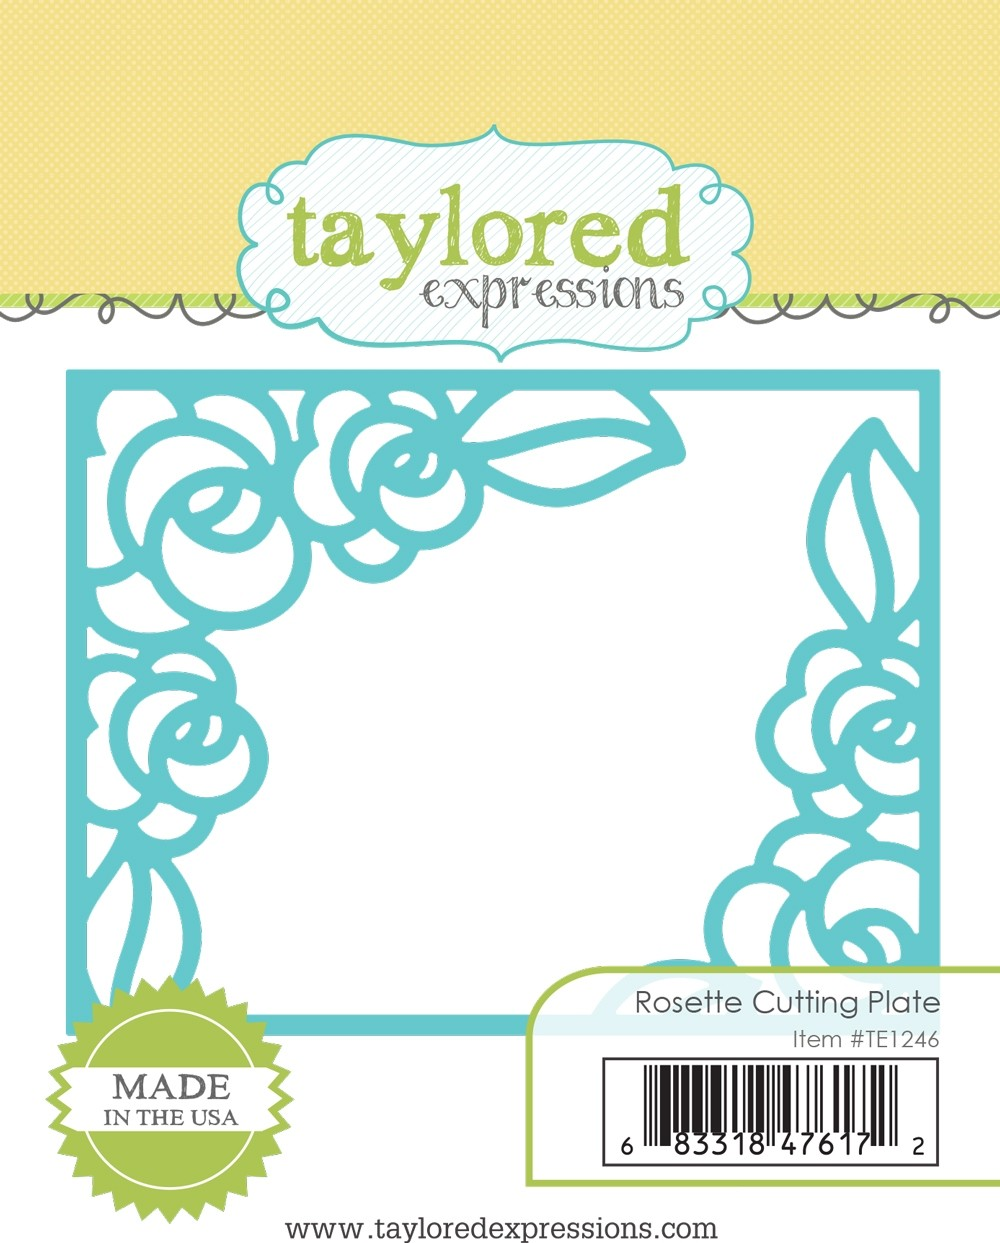 *NEW* - Taylored Expression - Rosette Cutting Plate